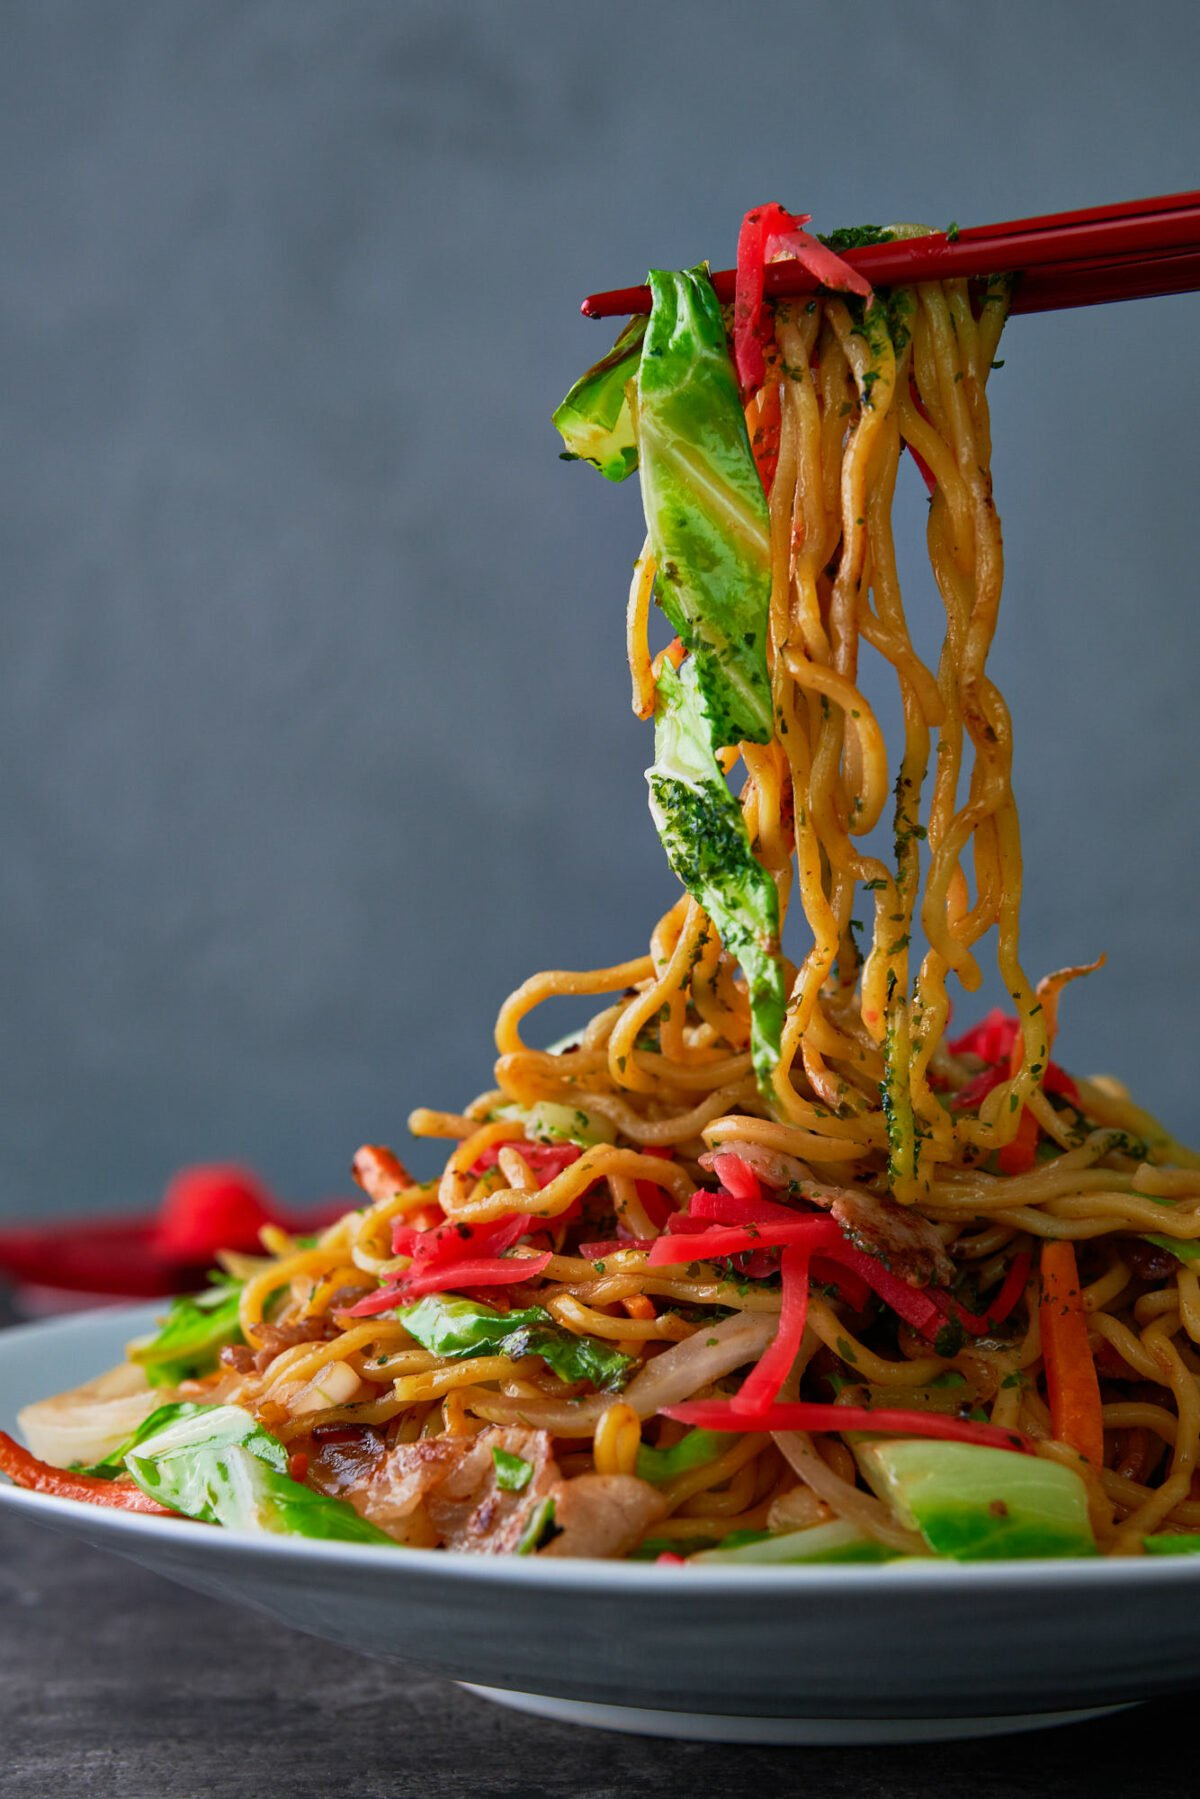 Long Chinese-style noodles stir-fried with cabbage, carrots and onions.